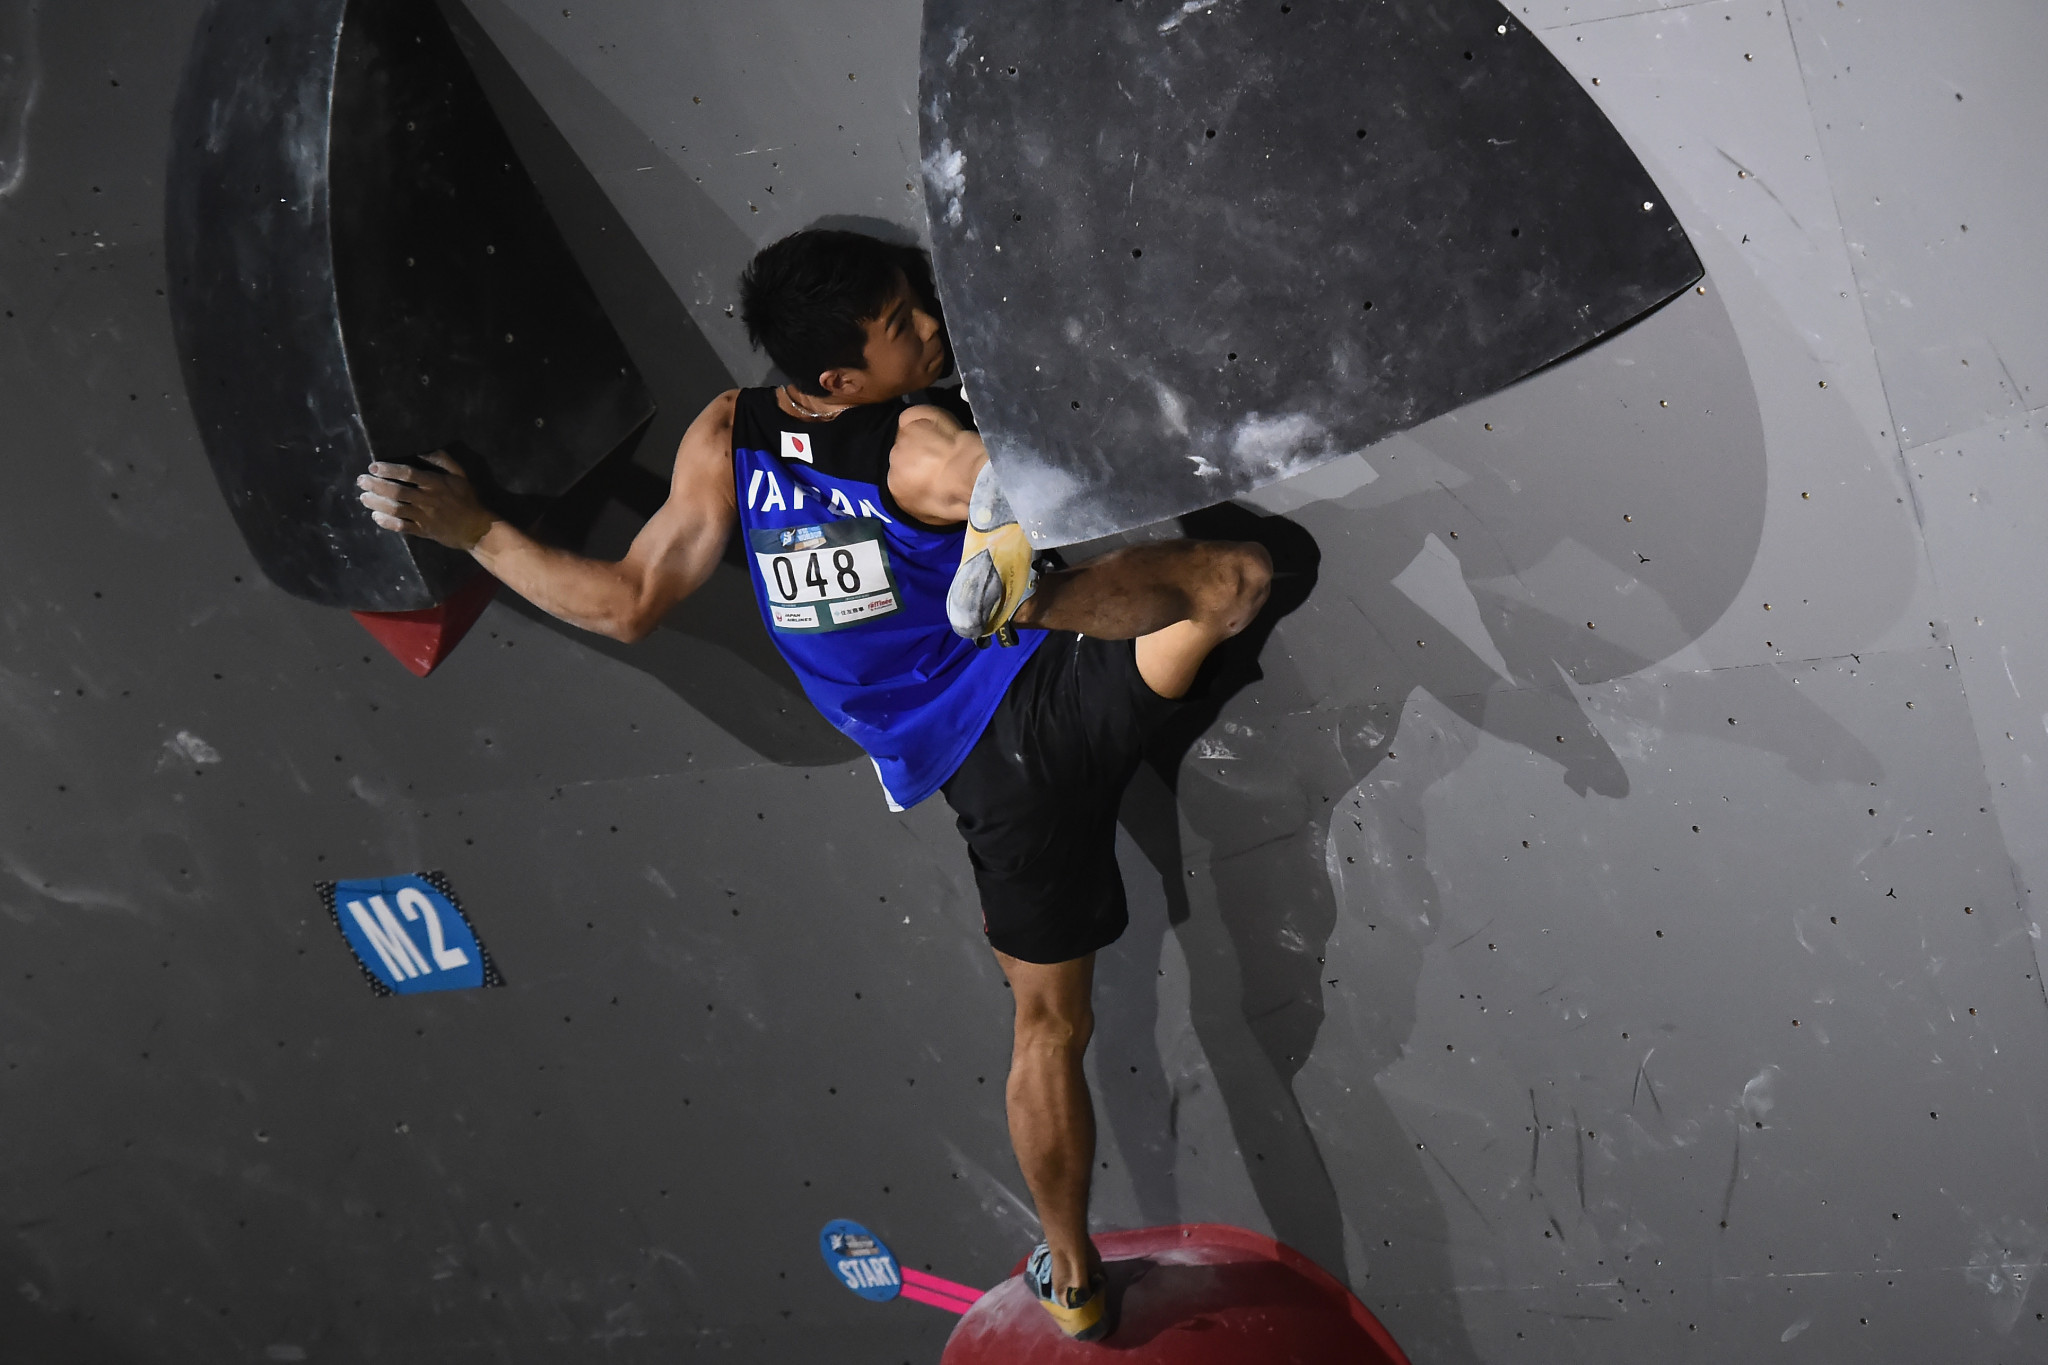 Japan's Rei Sugimoto came first in the men's bouldering semi-final at the IFSC Asian Championships in Kurayoshi ©Getty Images